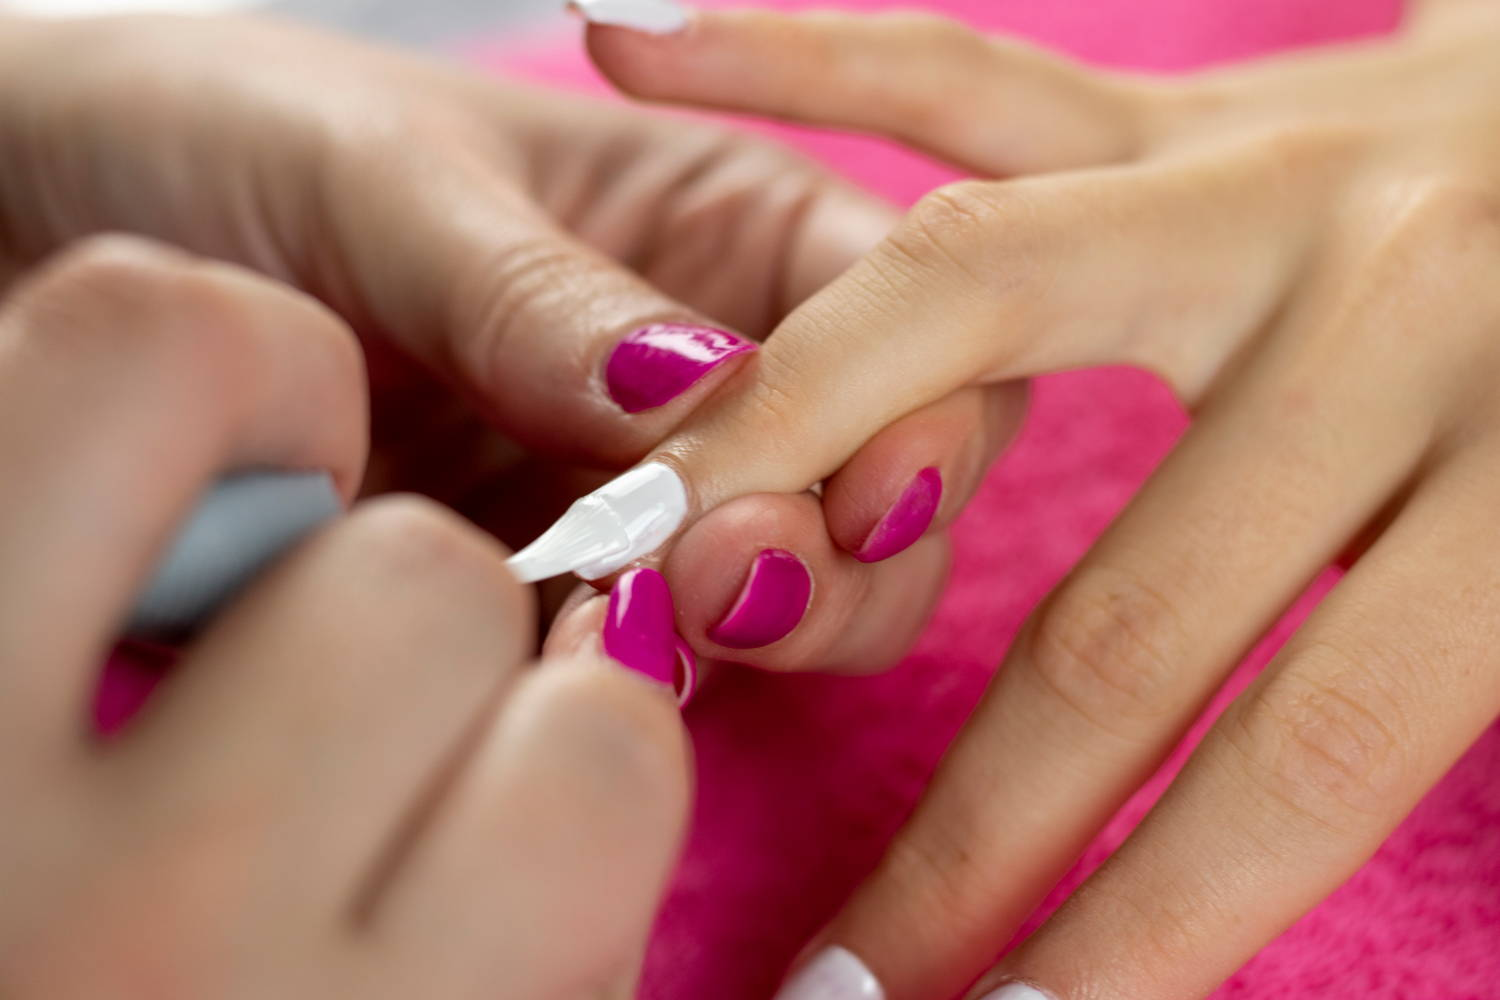 Nail being painted with ORLY White Tips nail polish